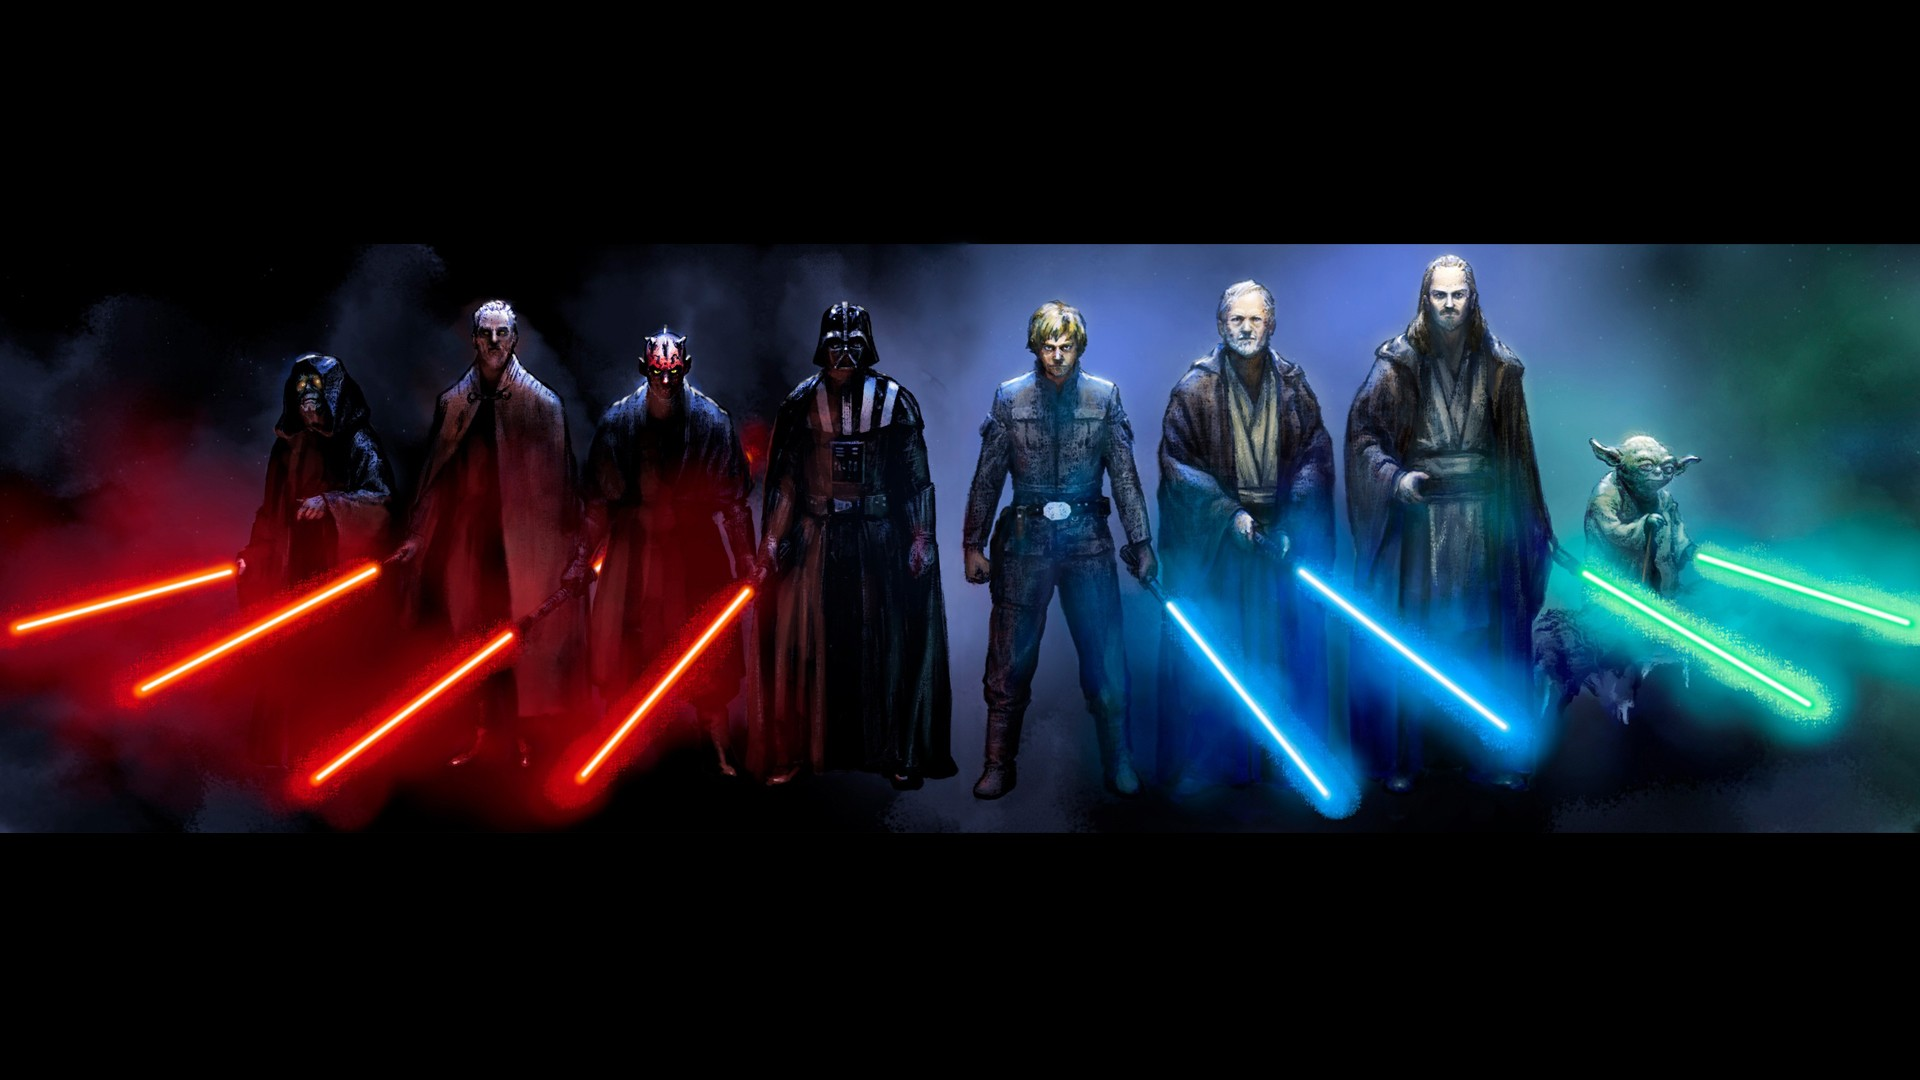 Star-wars-sith-and-jediwallpapers360951920x1080